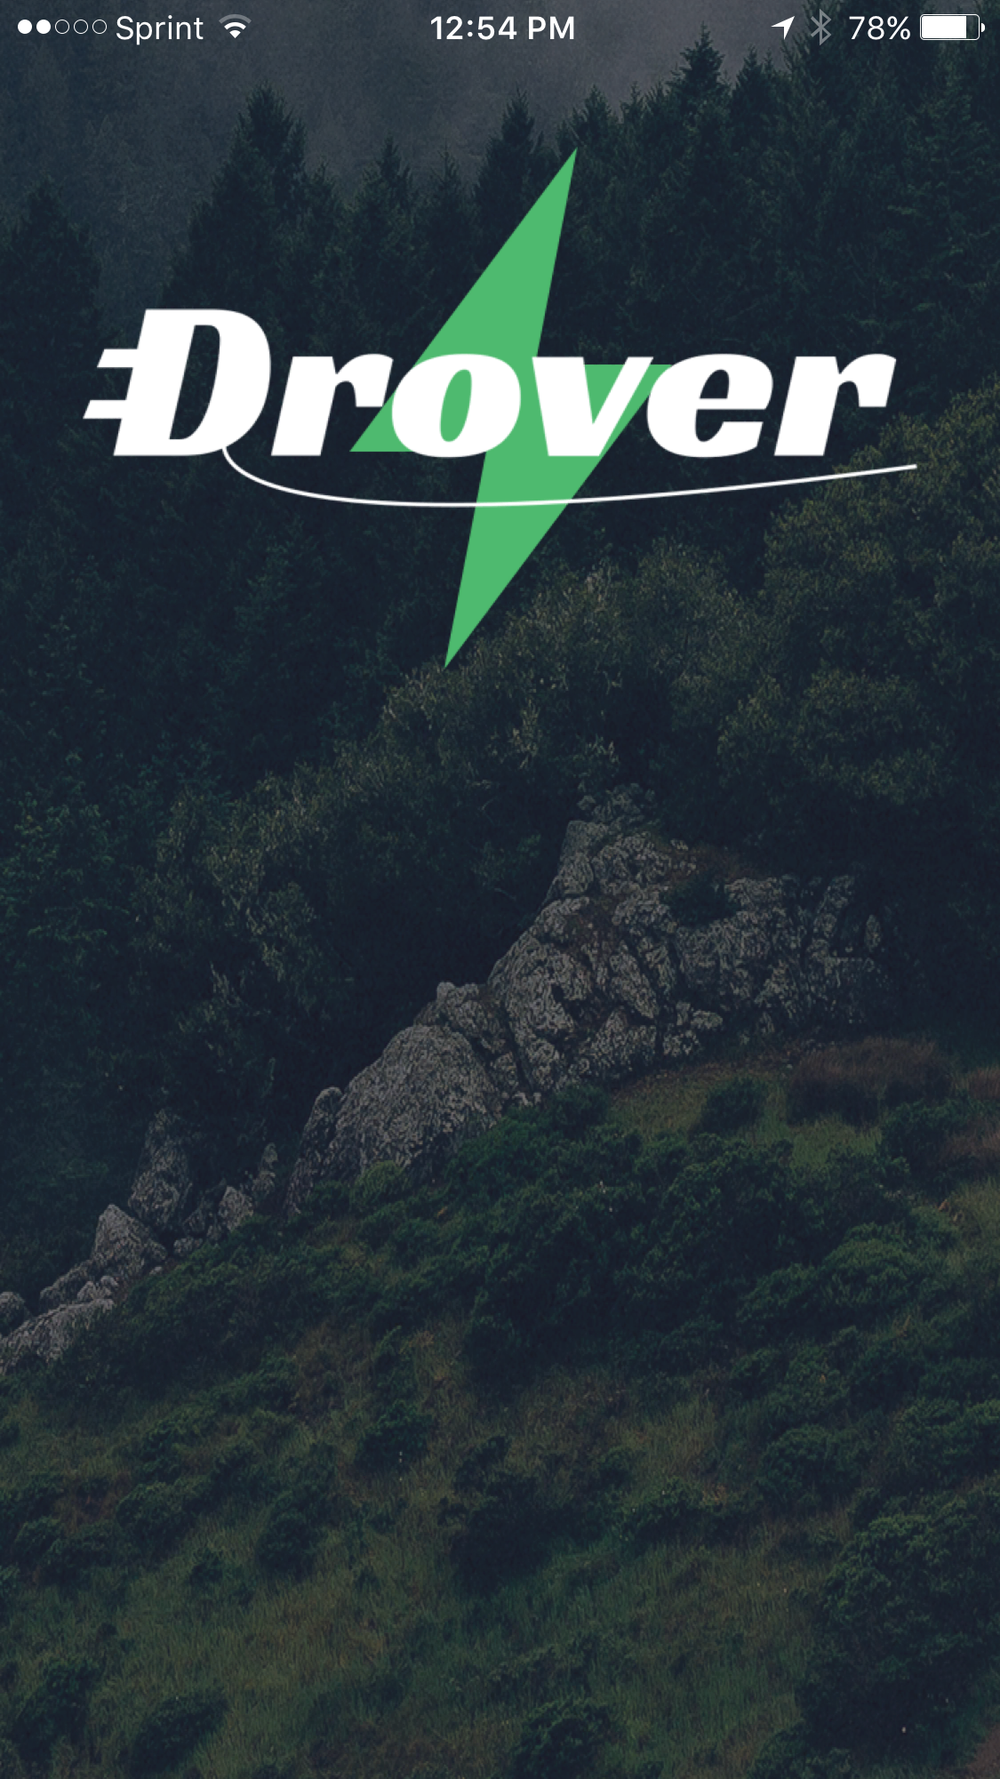 Drover App Launch Screen